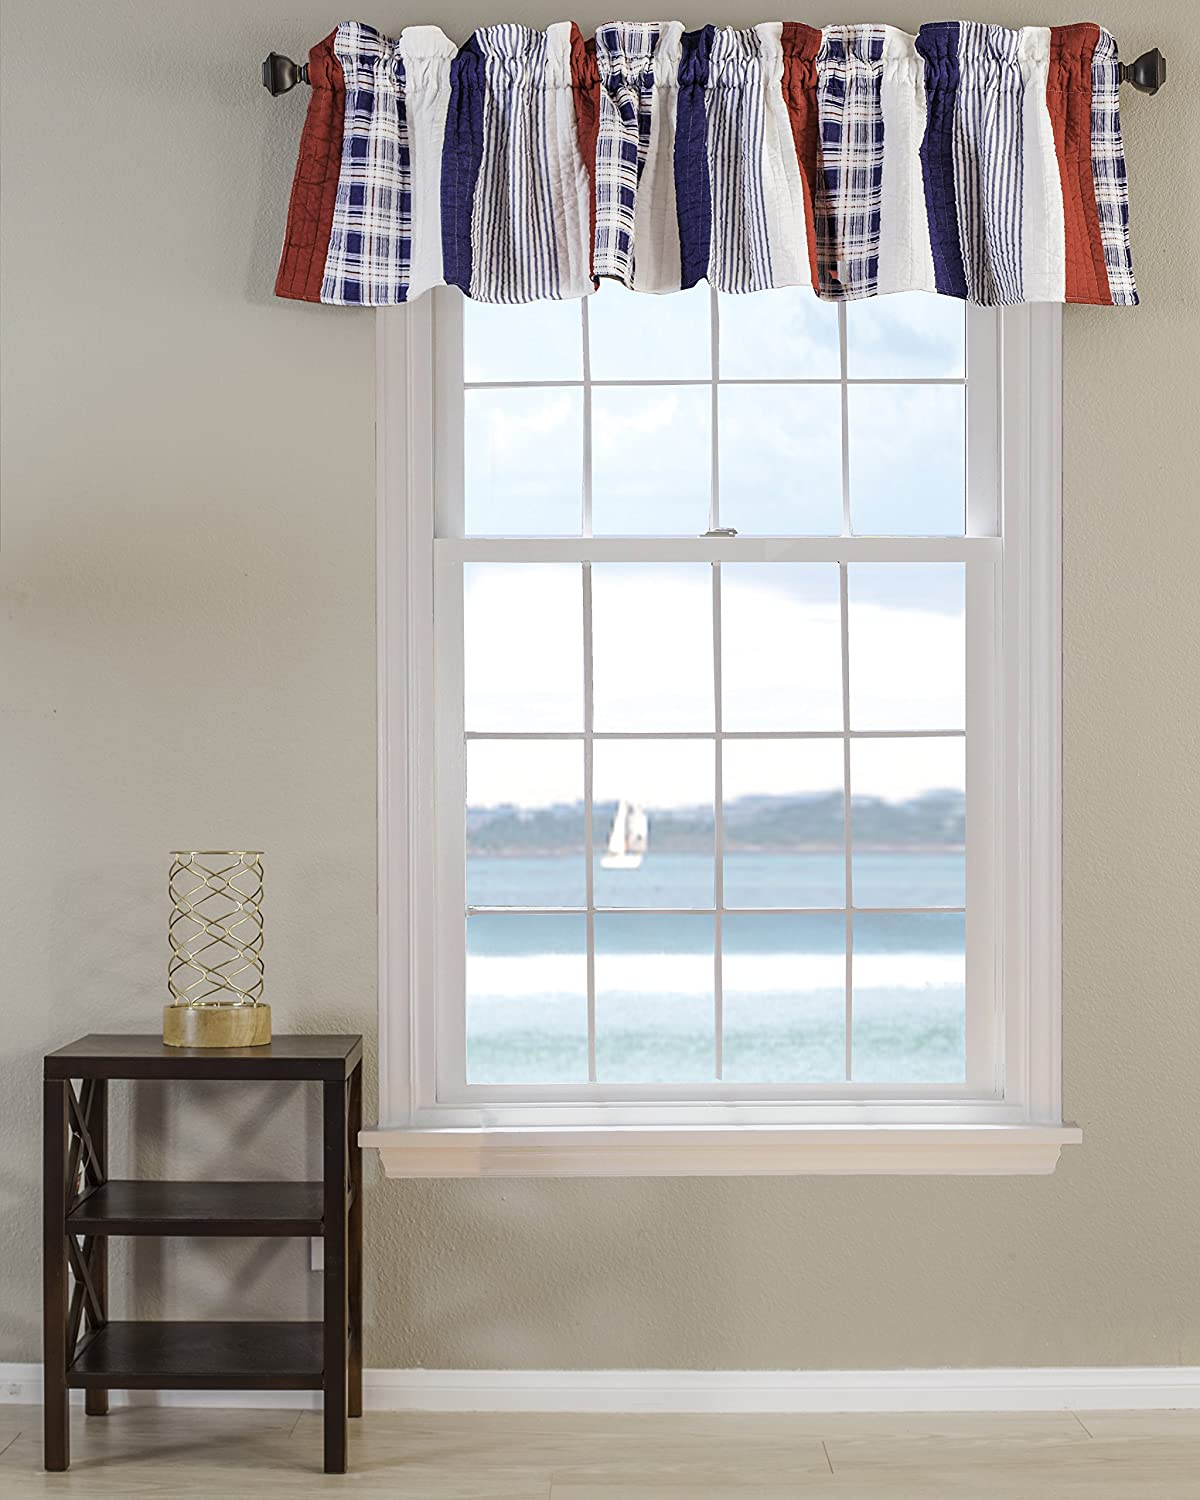 ebe contemporary window dd charm satisfactory themed fascinate and riveting nautical print of treatments seashell walmartcom striped best curtains valance bathroom windows kitchen inspirations s for ce size c unusual pleasant trends coffee sailboat beach jute valances acae full delight house aab